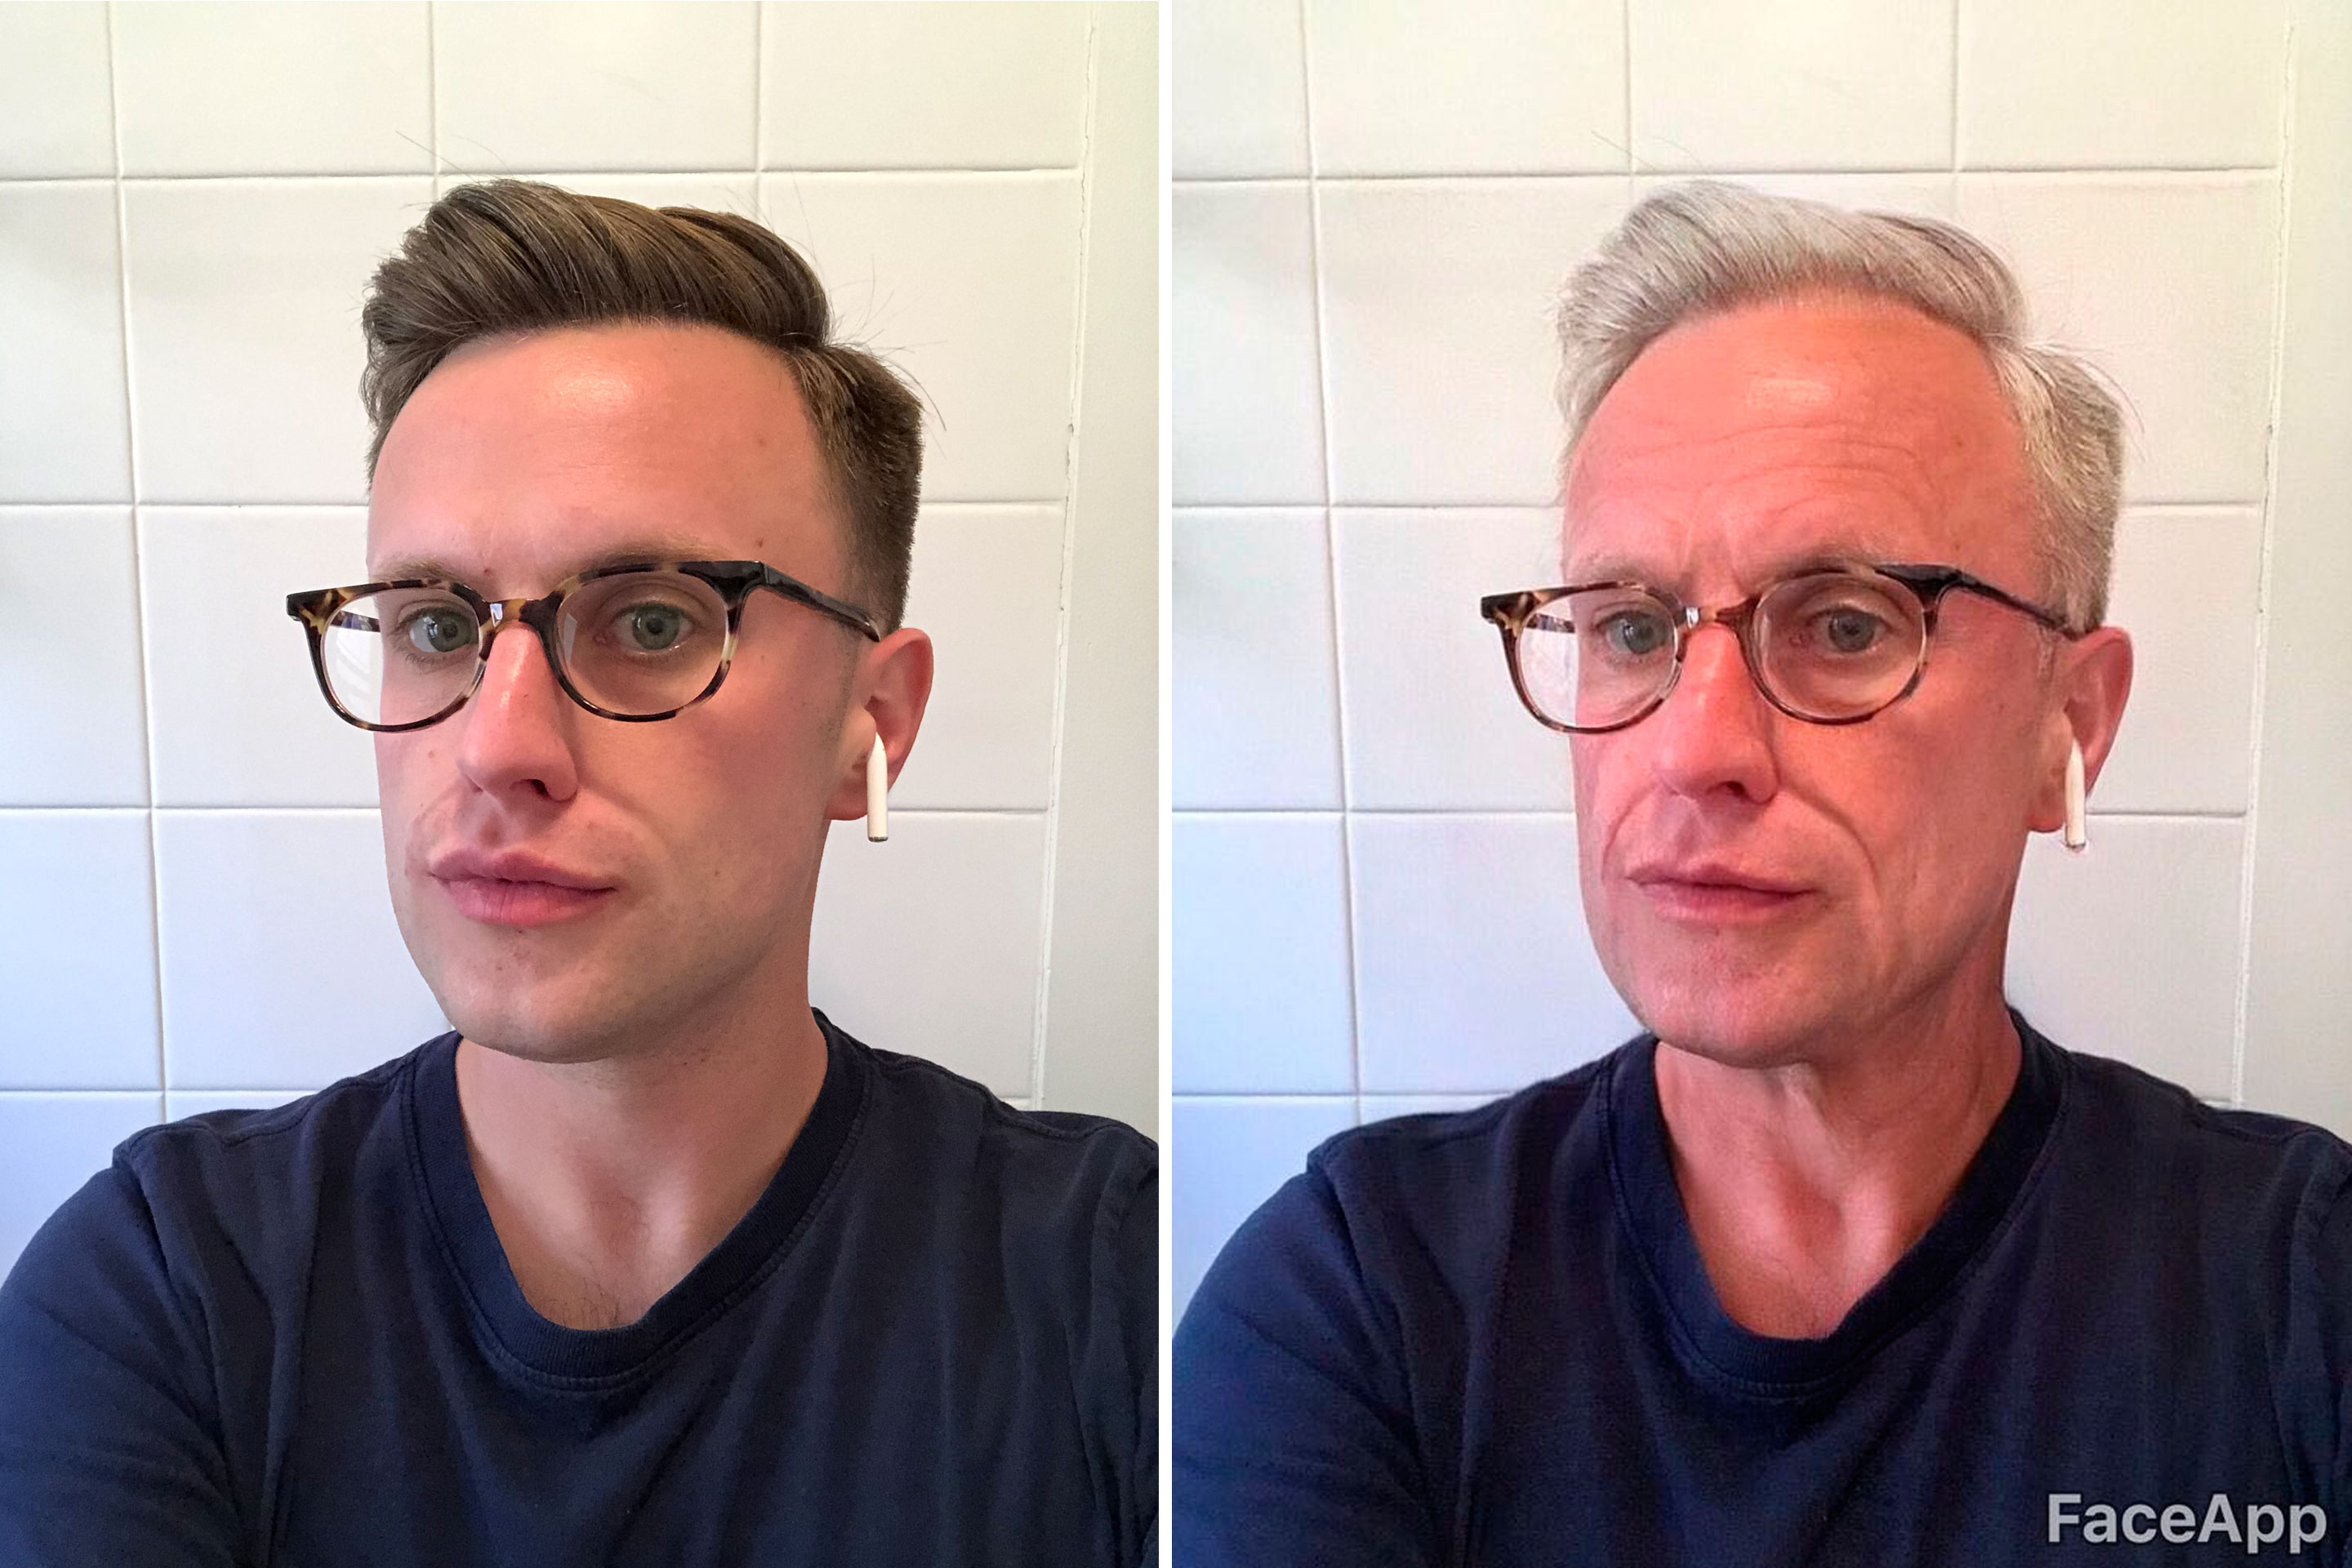 A before and after photo, using FaceApp's old age filter. The aging app has gone viral, but the Russian company's privacy policy is raising questions.